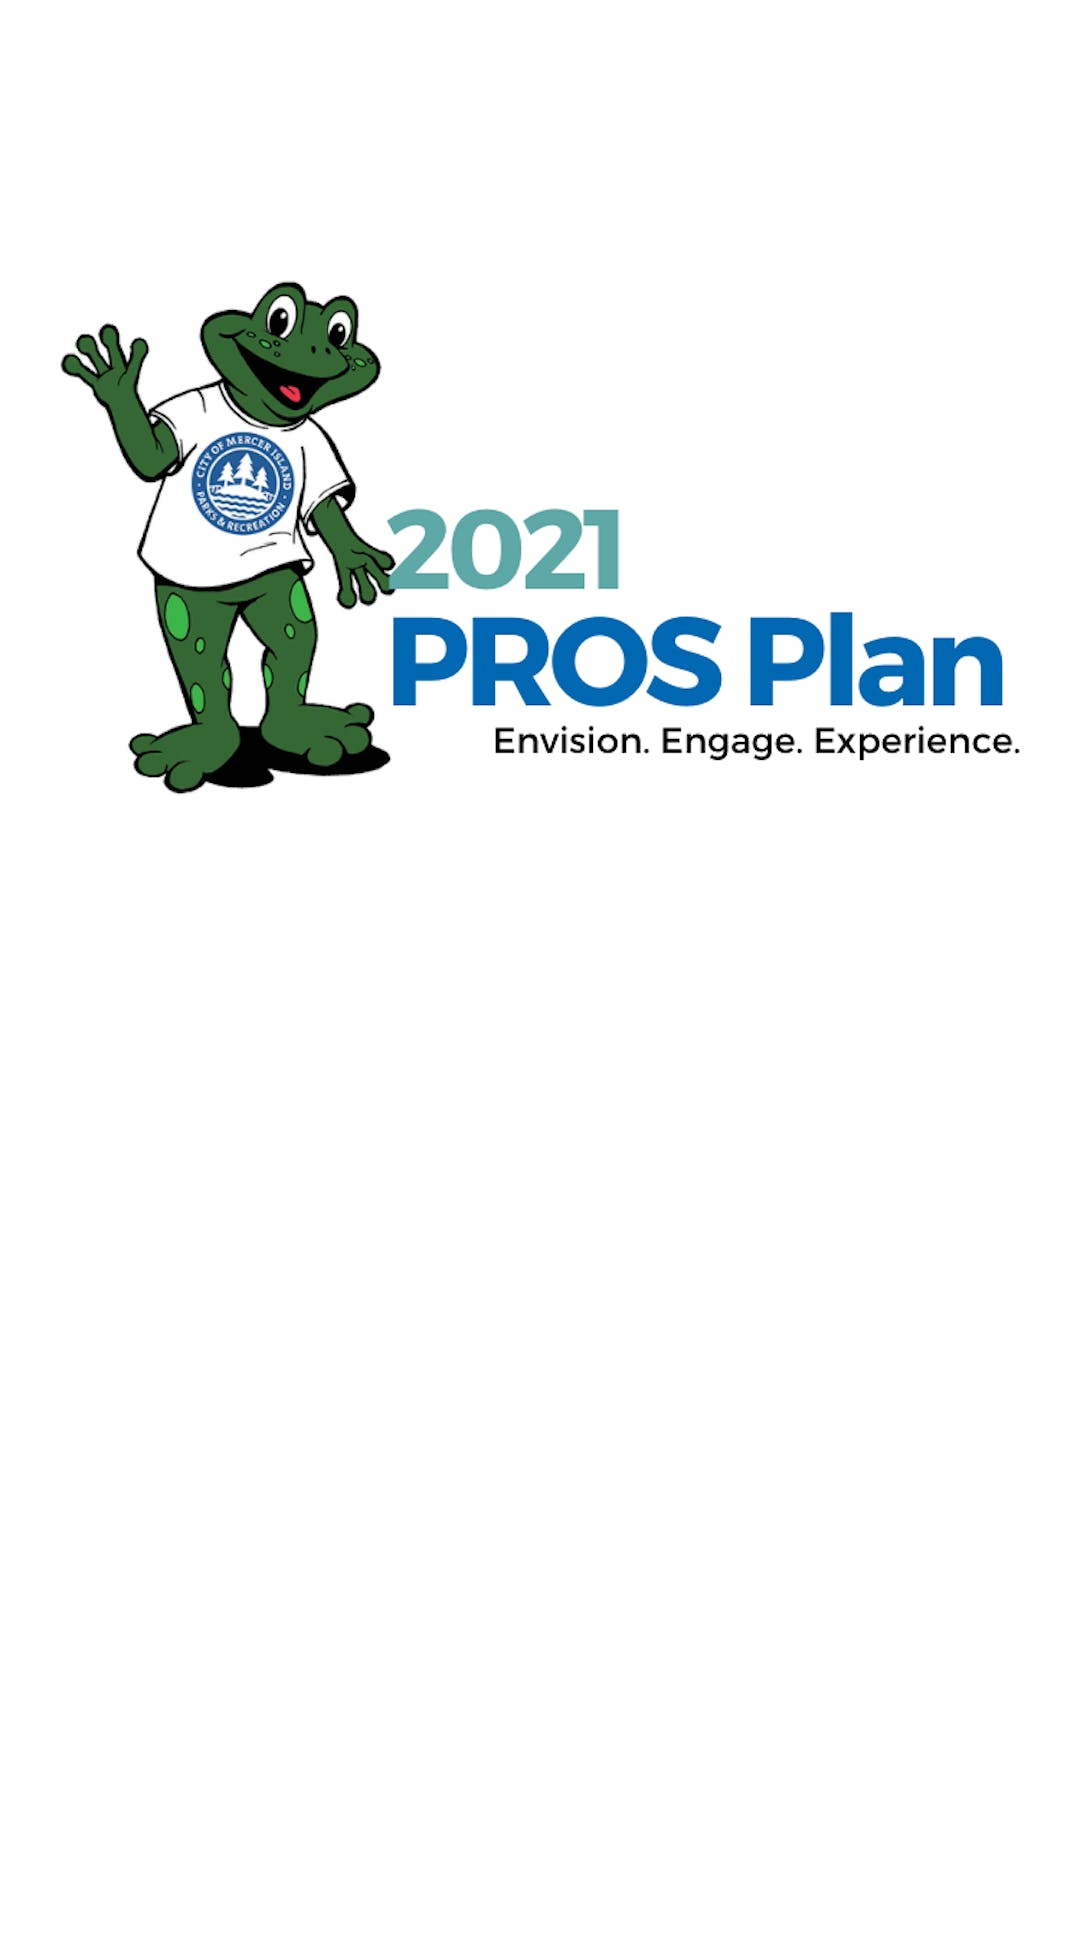 A blue and green logo that says 2021 PROS Plan: Envision, Engage, Experience. Logo includes a smiling frog standing up and waving.